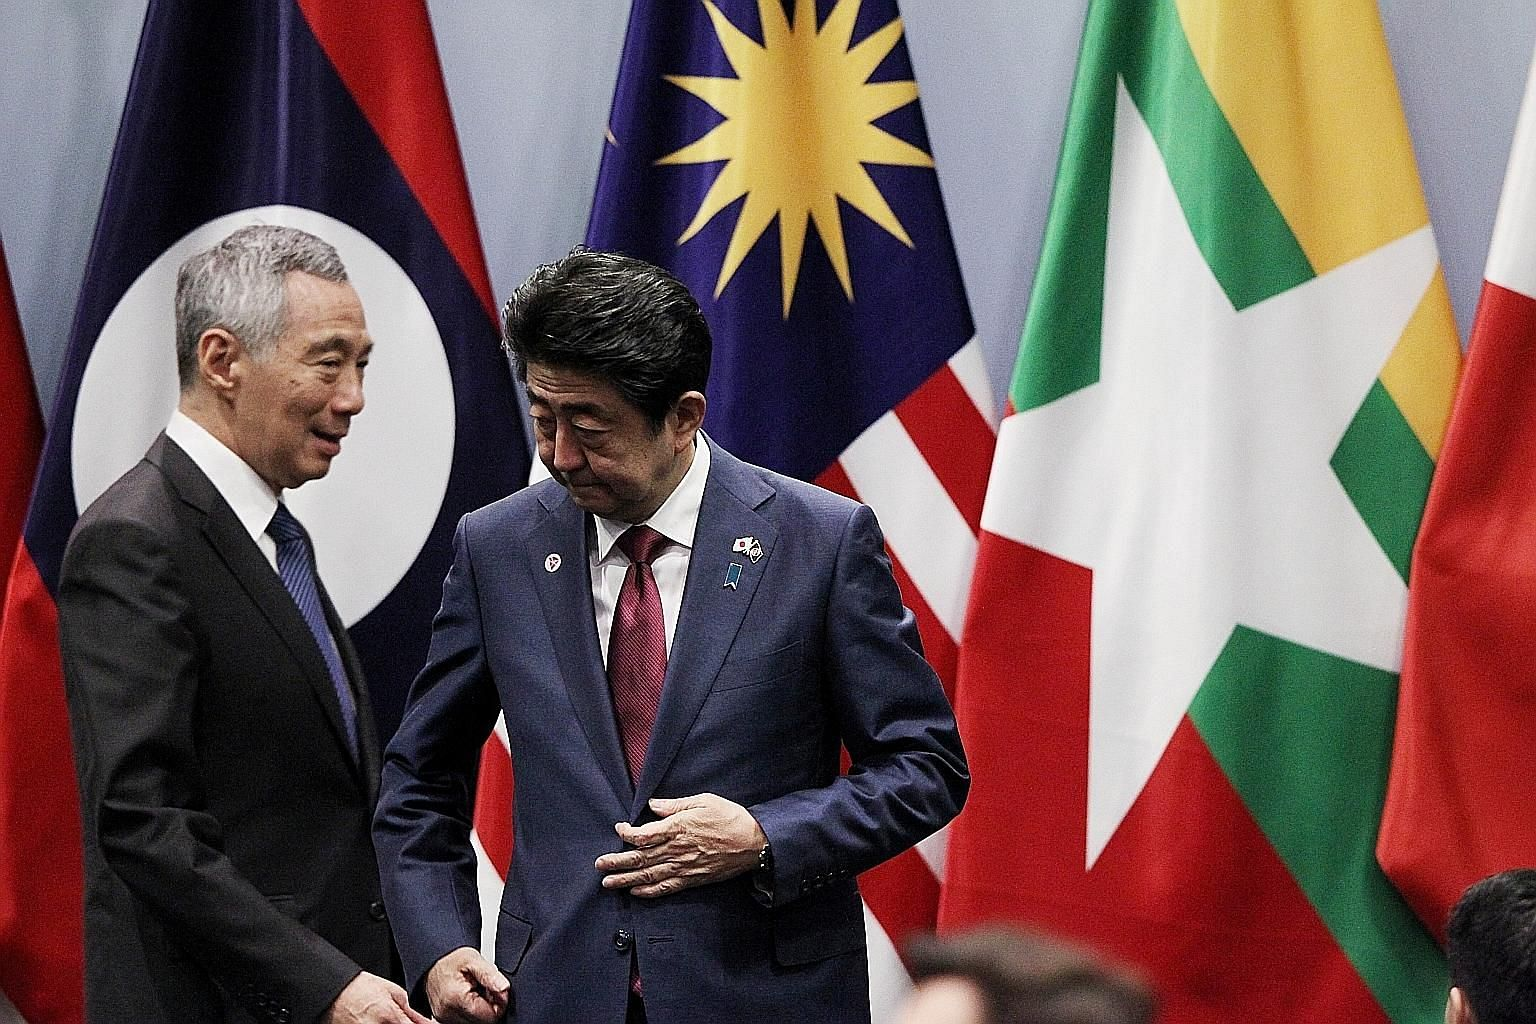 Prime Minister Lee Hsien Loong with his Japanese counterpart Shinzo Abe at a summit in Singapore in 2018. PM Lee said after Mr Abe's resignation last month that he has worked very well with the Japanese leader.